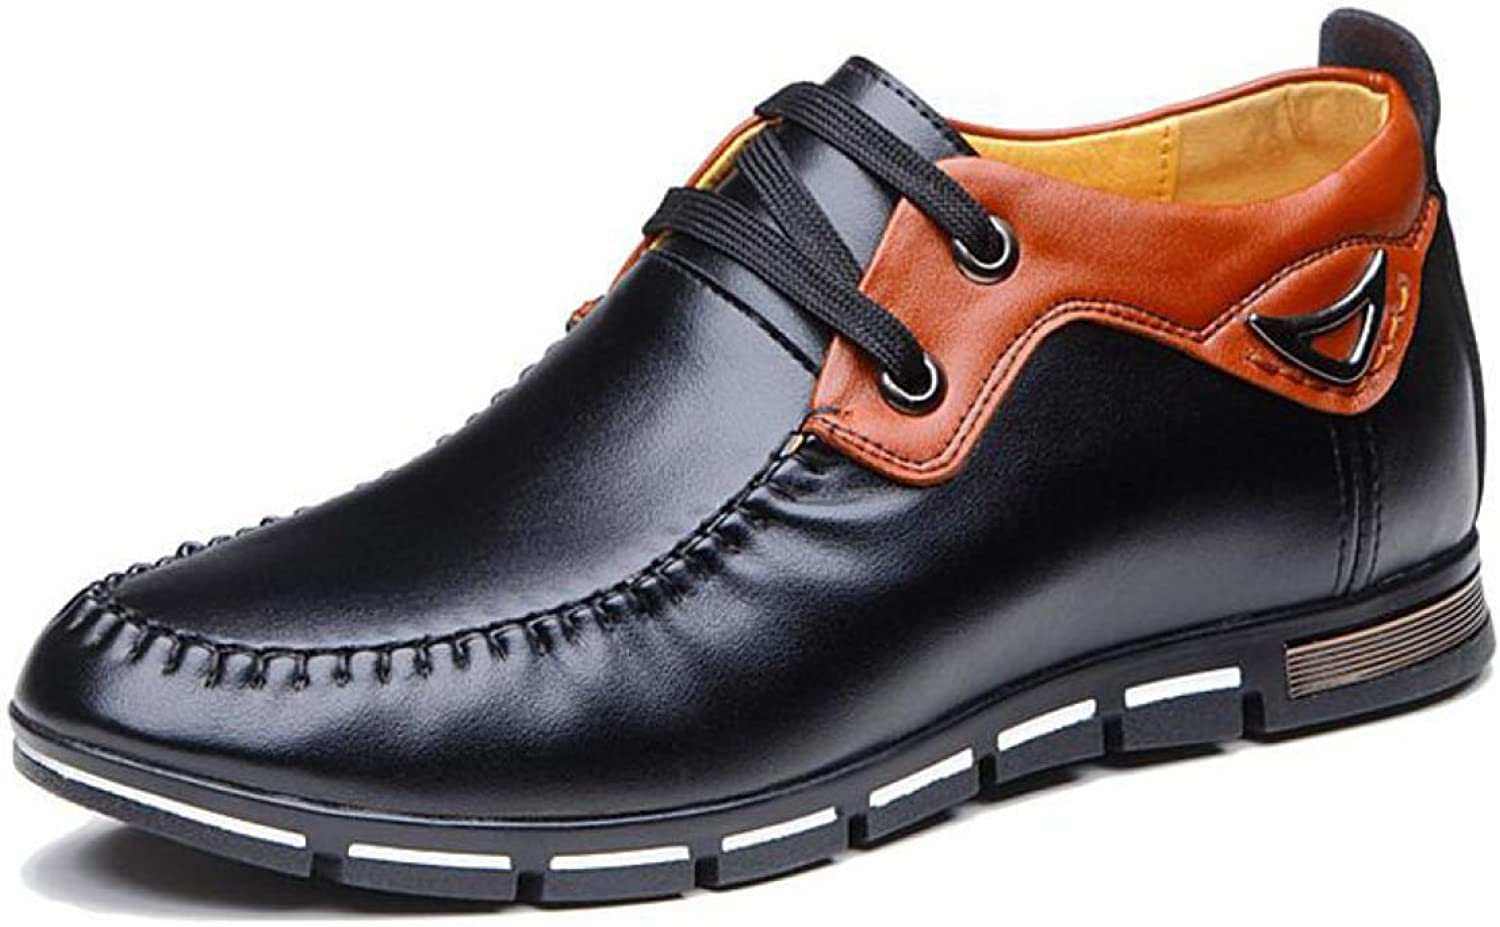 Men's shoes Leather Casual shoes Stealth 6 Cm Increase shoes